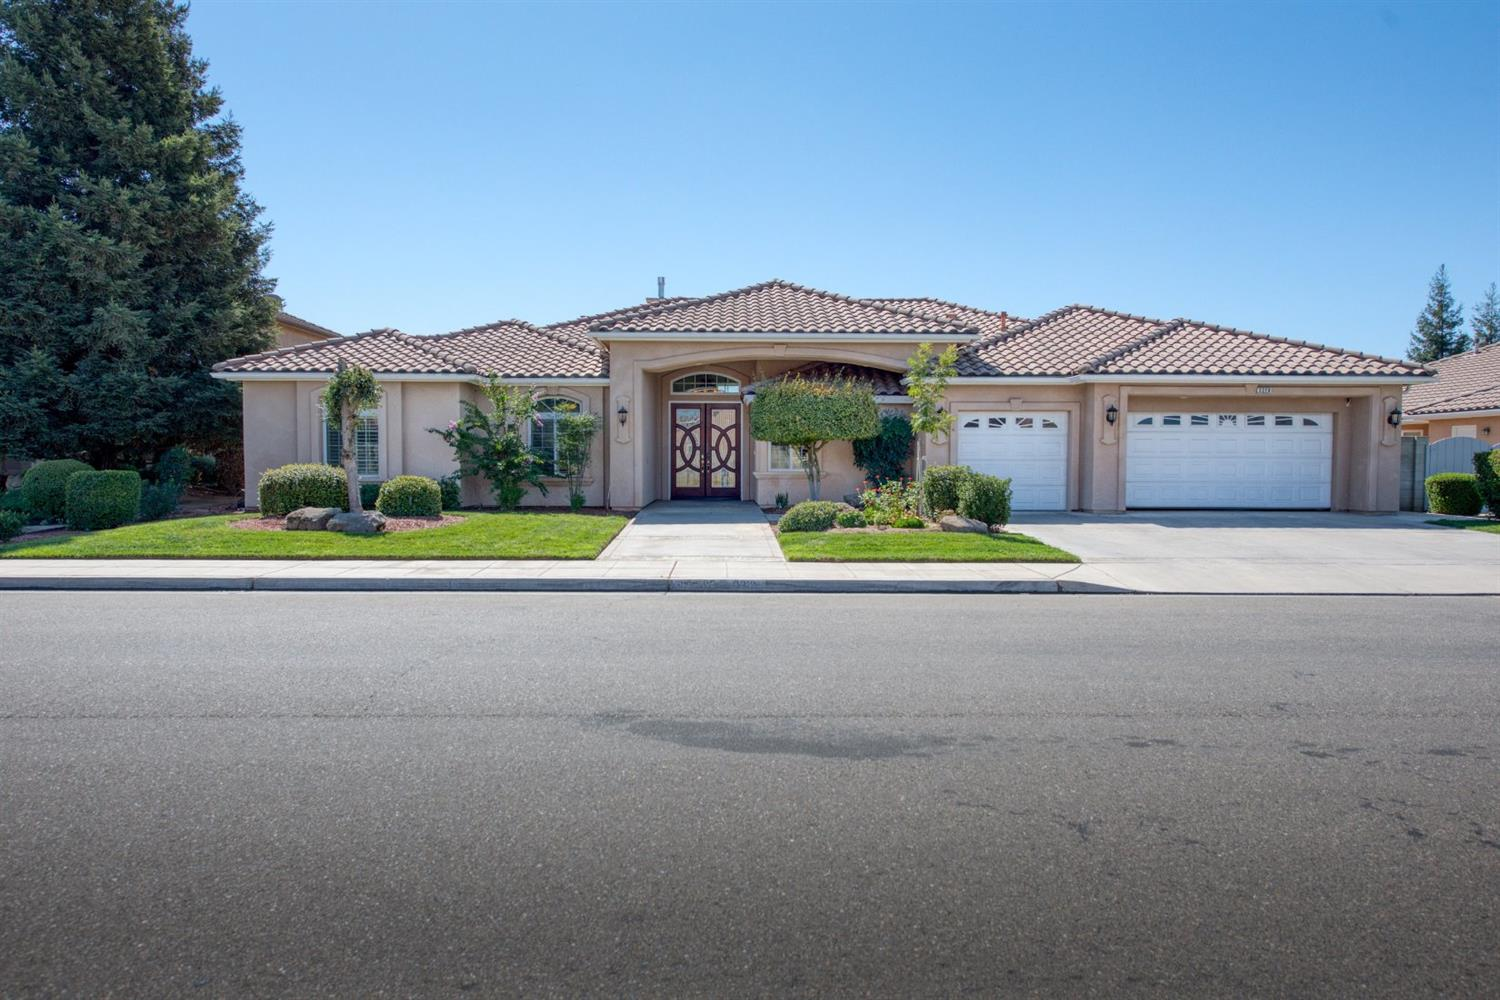 Photo of 3210 Fairfield Way, Madera, CA 93637